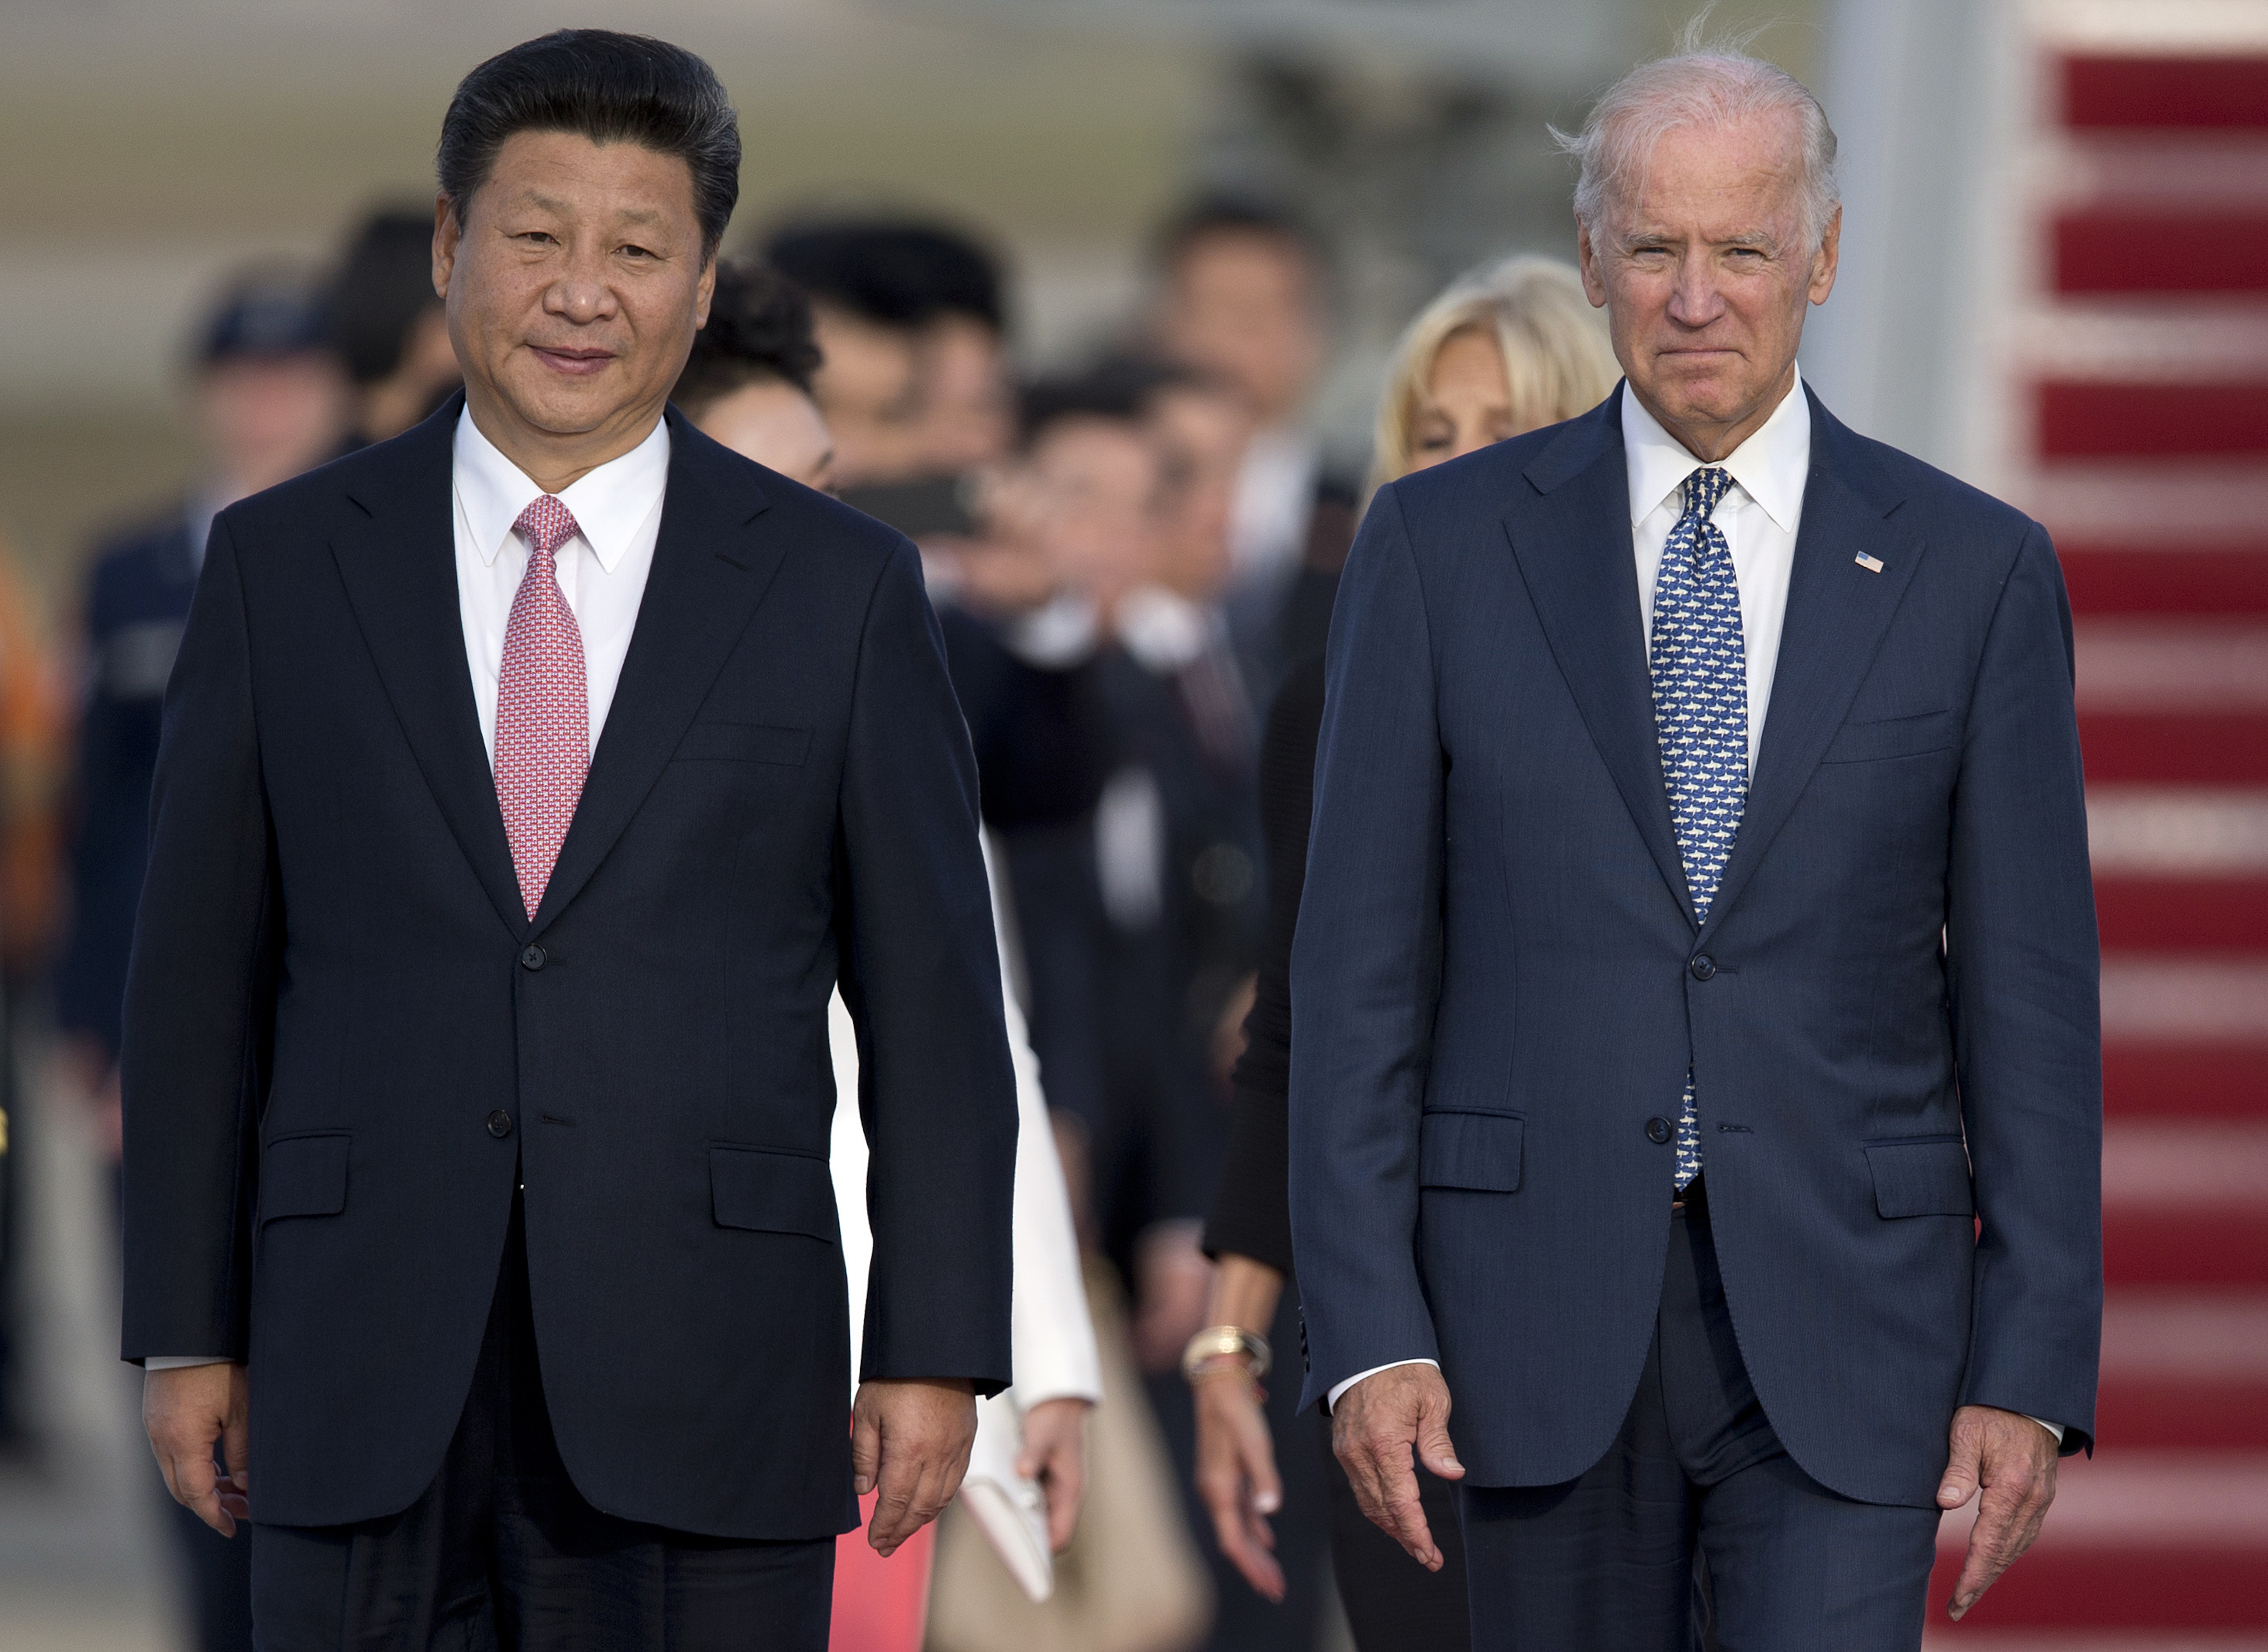 In this Sept. 24, 2015 file photo, Chinese President Xi Jinping and Vice President Joe Biden walk down the red carpet on the tarmac during an arrival ceremony in Andrews Air Force Base, Md.